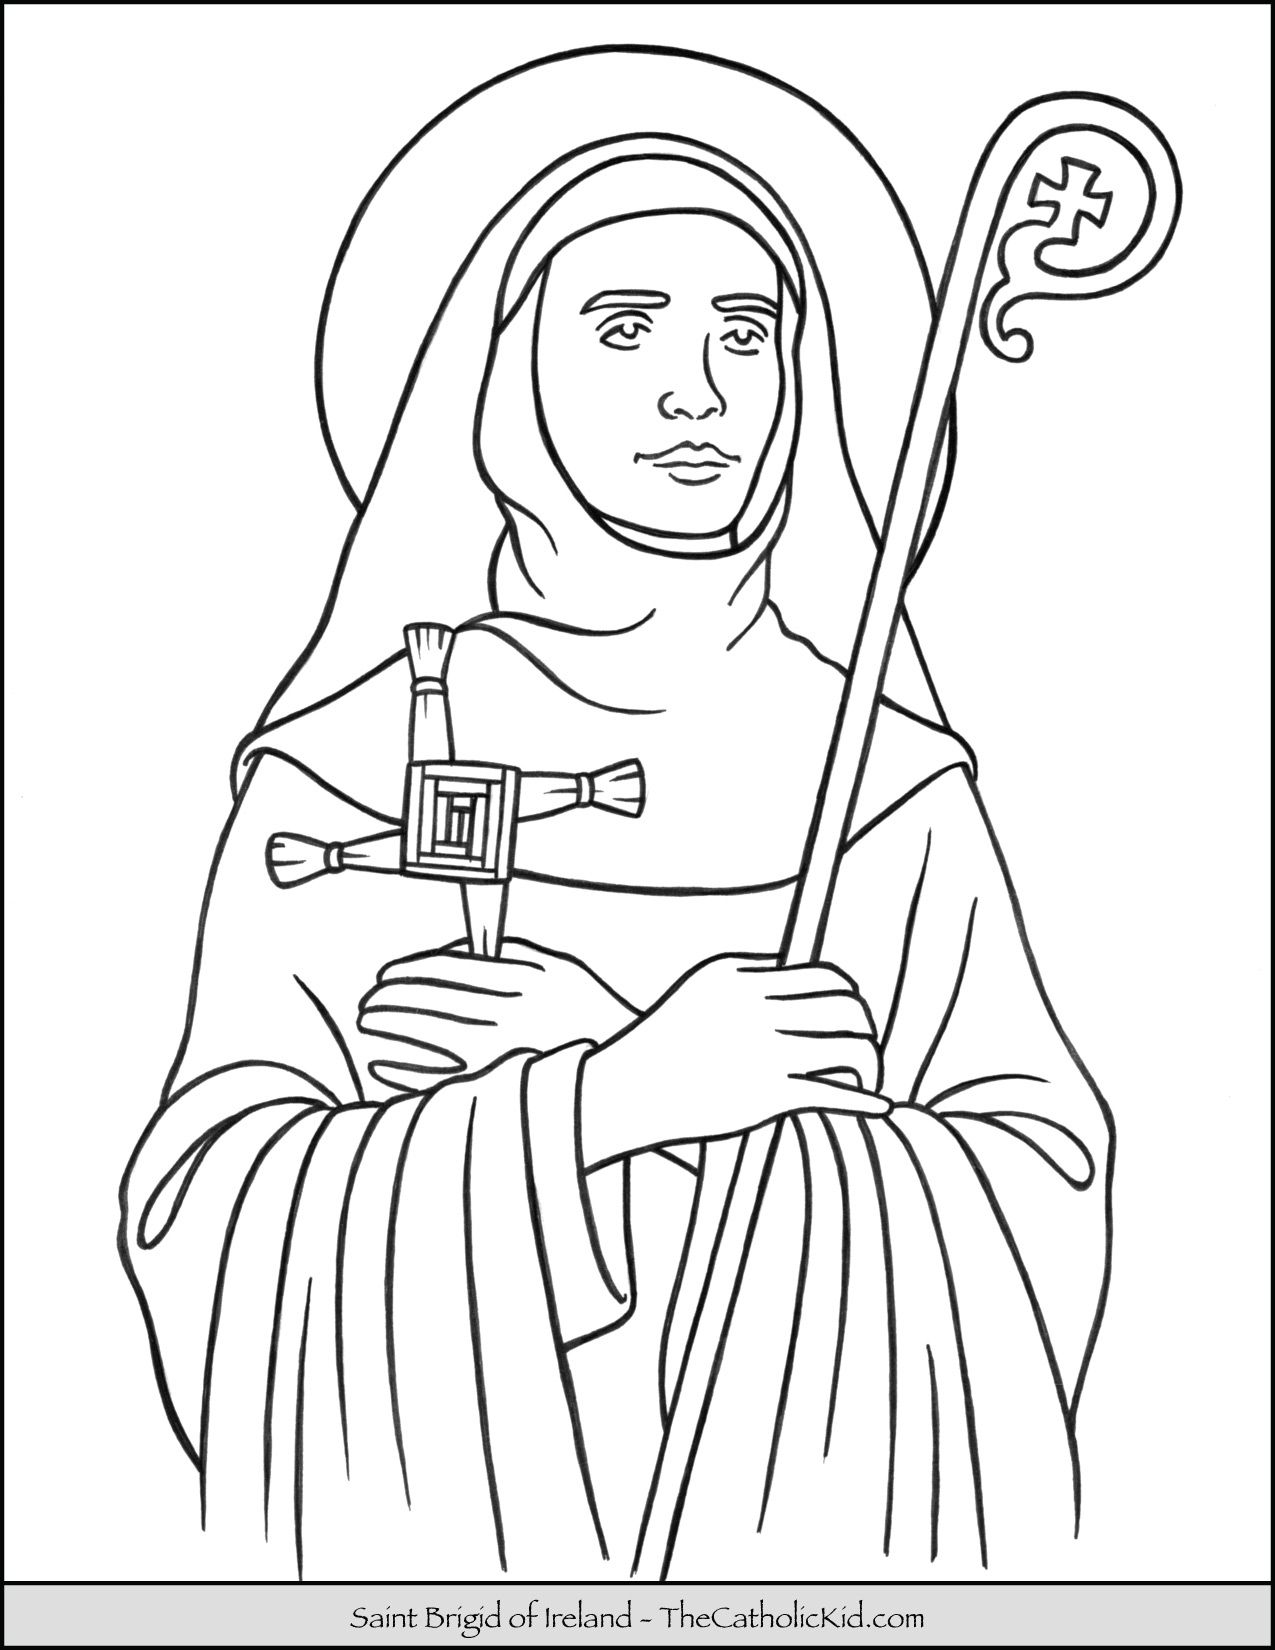 Saint Brigid Of Ireland Coloring Page Thecatholickid Com With